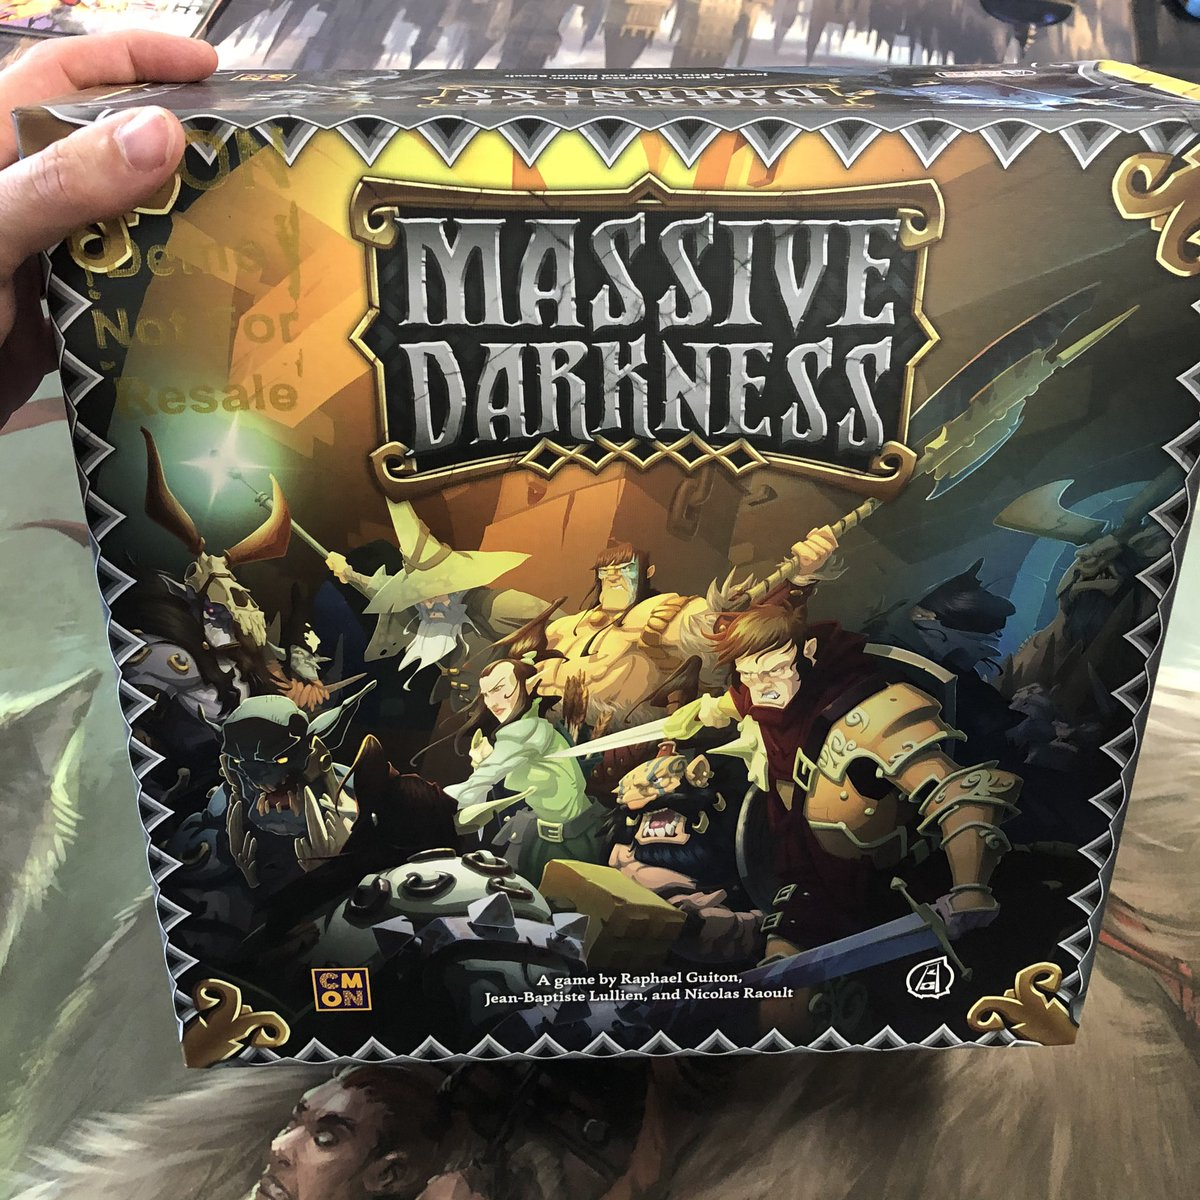 Got to check out Massive Darkness by @CMONGames with @starkdesign. Amazingly detailed minis, unique gameplay, and great character customization. #ttrpg #boardgames #boardgamegeek #massivedarkness #cmongamespic.twitter.com/QYdrCD1CS1